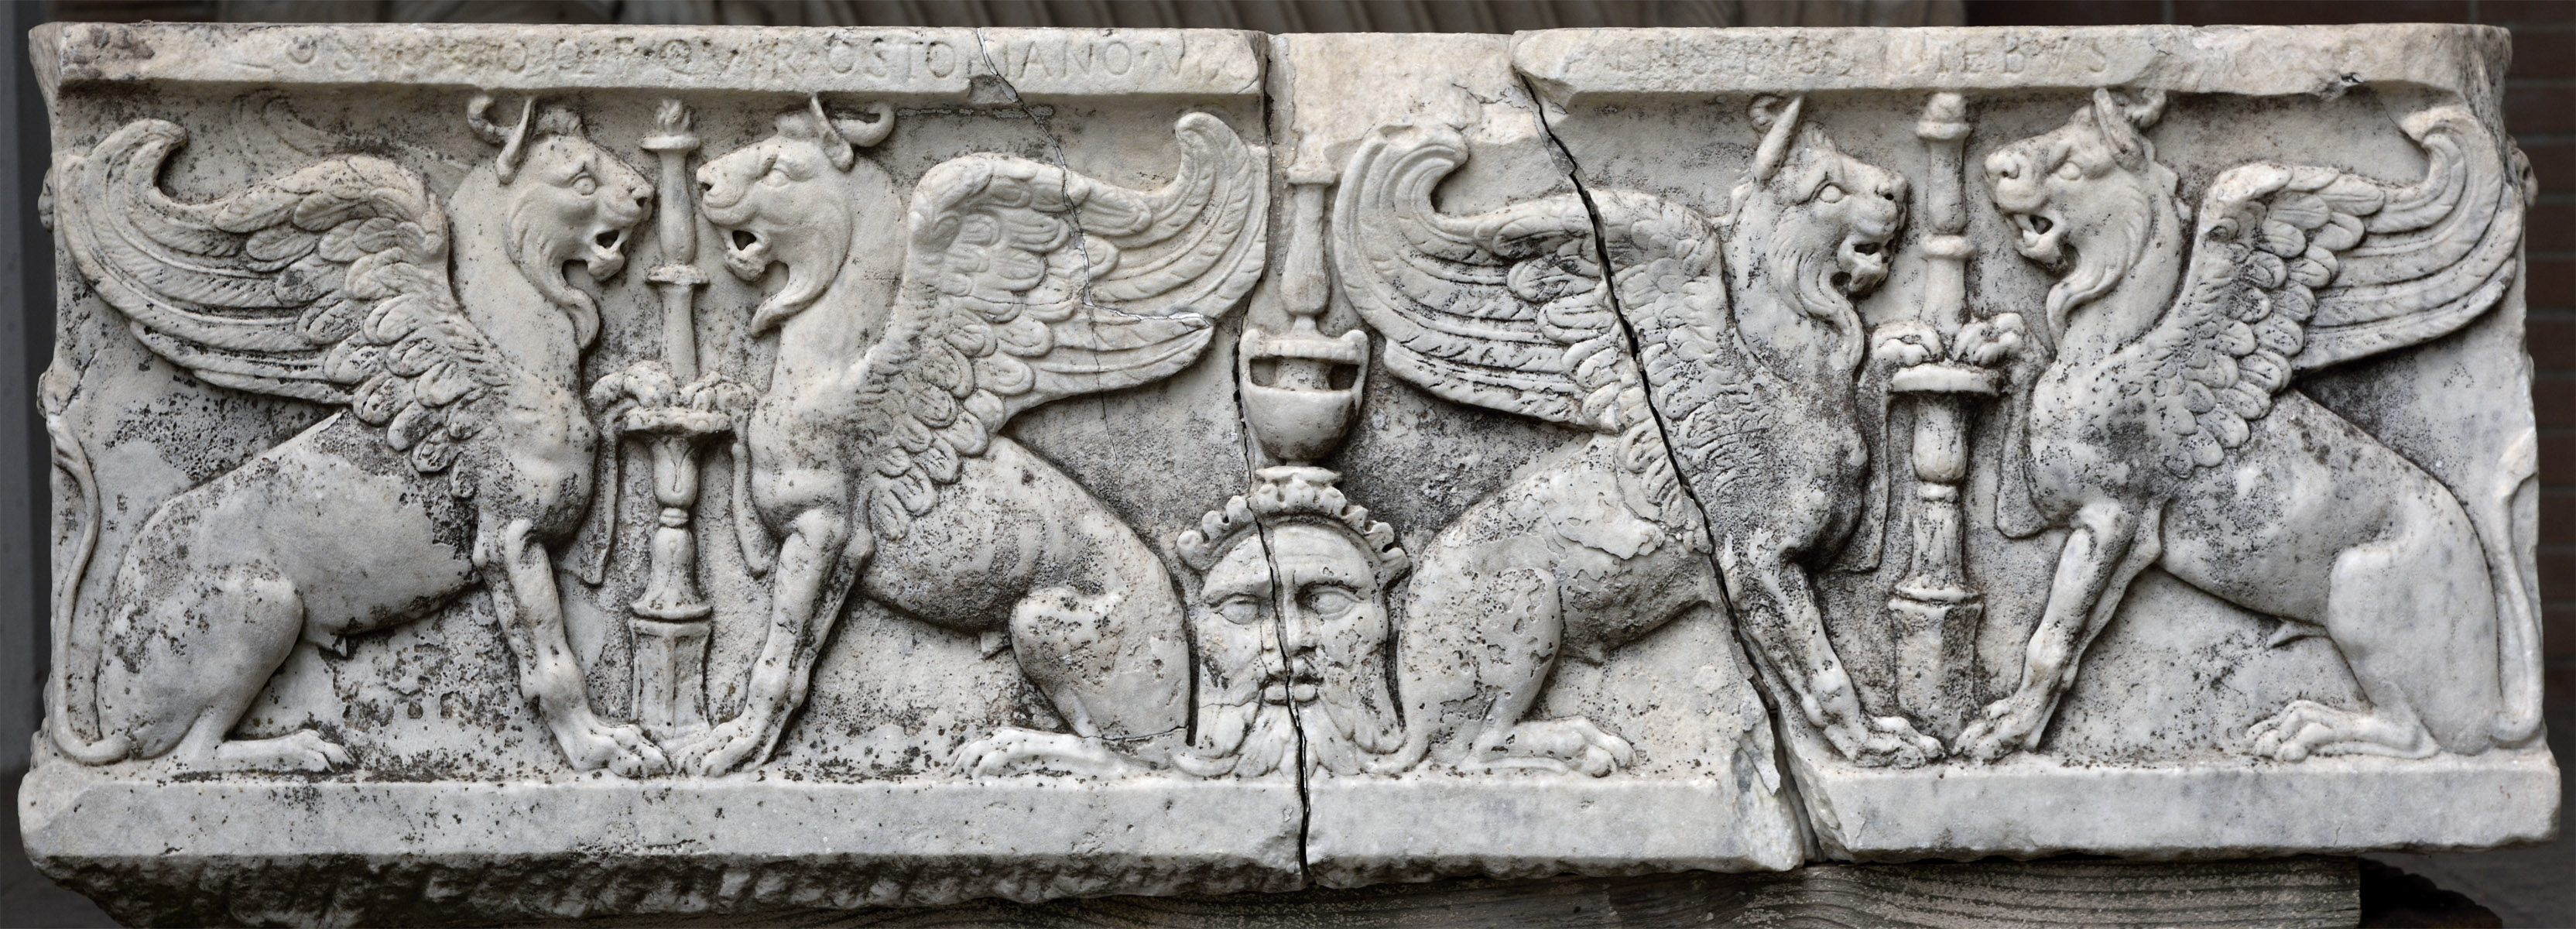 Sarcophagus with representation of griffins. Marble. 2nd cent. CE. Ostia, Archaeological Museum